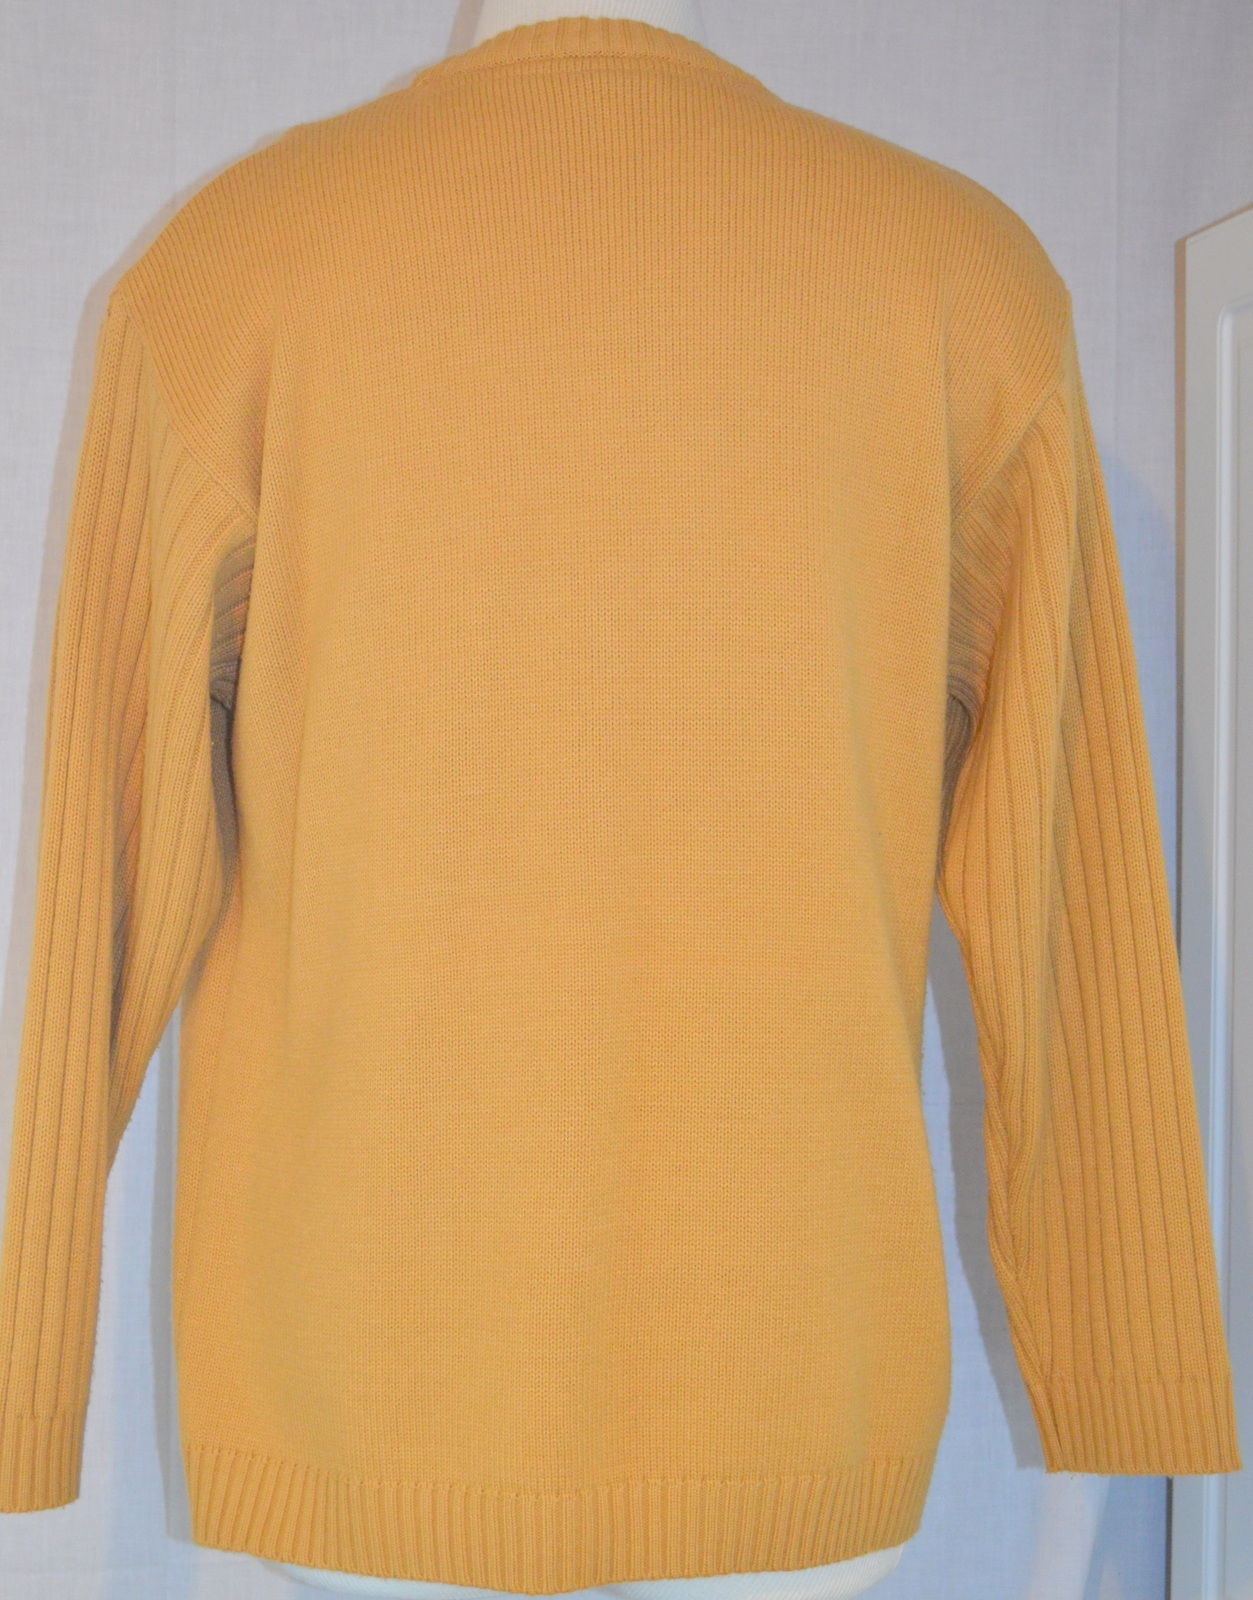 756d6f001e Southpole South Pole Orange Sweater Size L and similar items